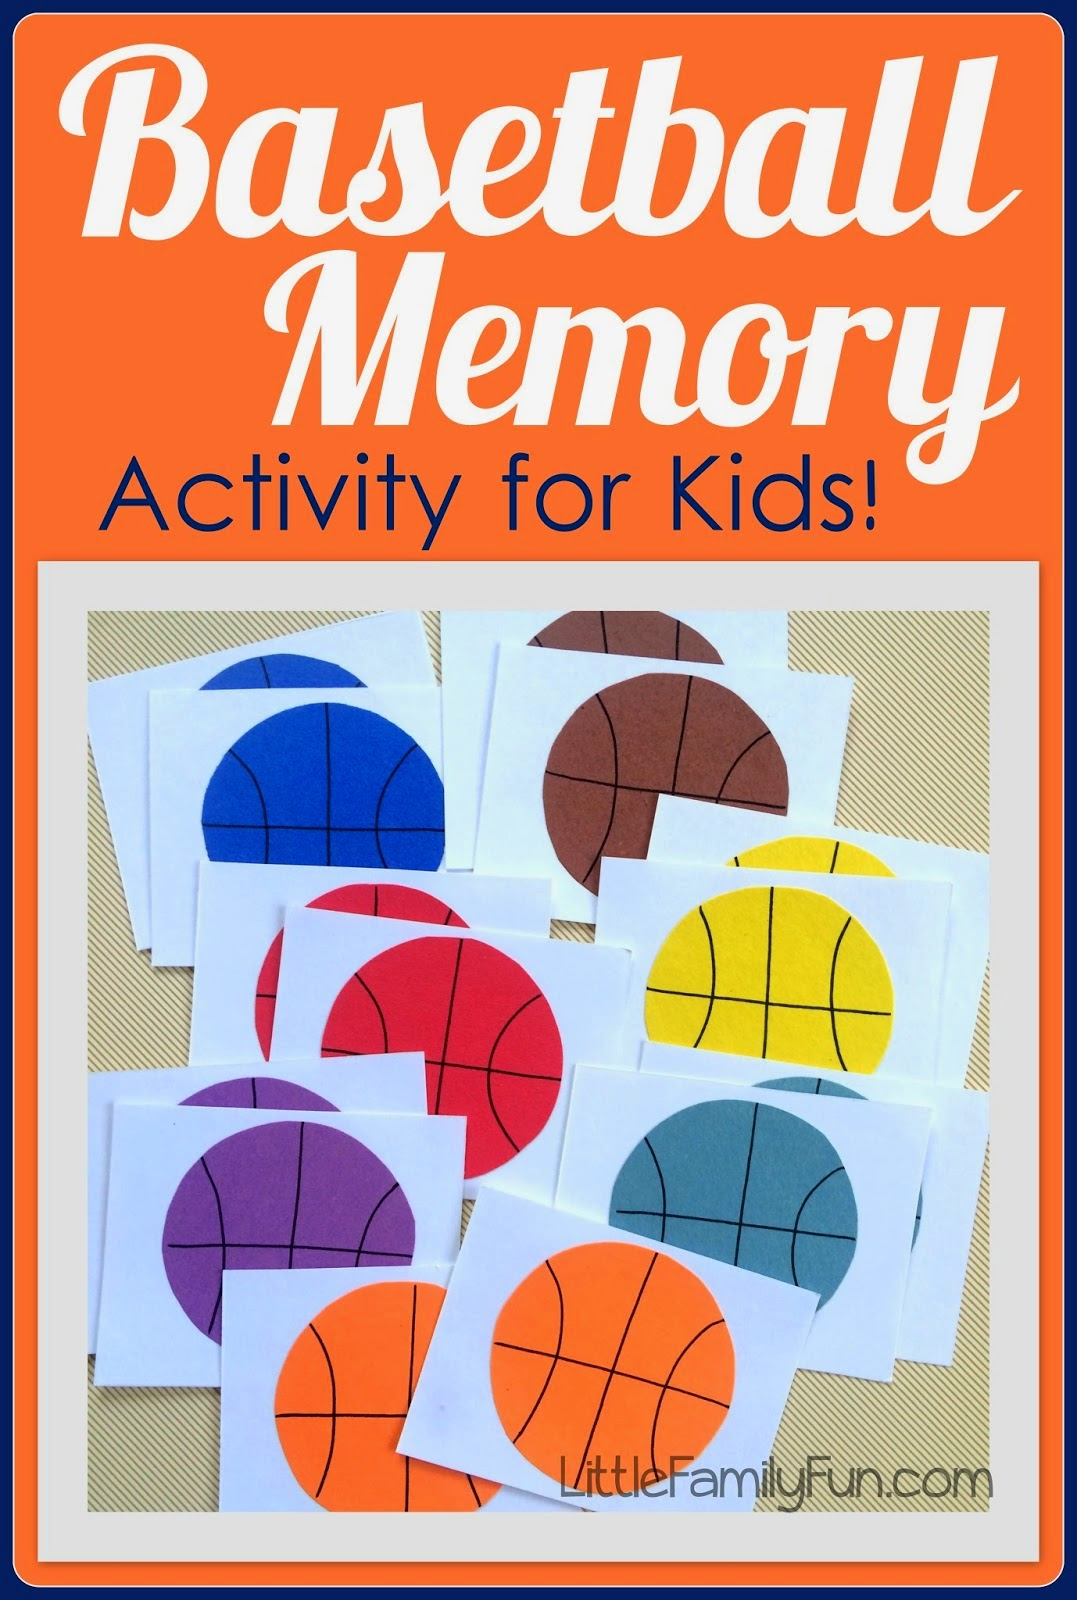 image Kawartha Lakes Mums featured Basketball Memory Game Tutorial - Little Family Fun